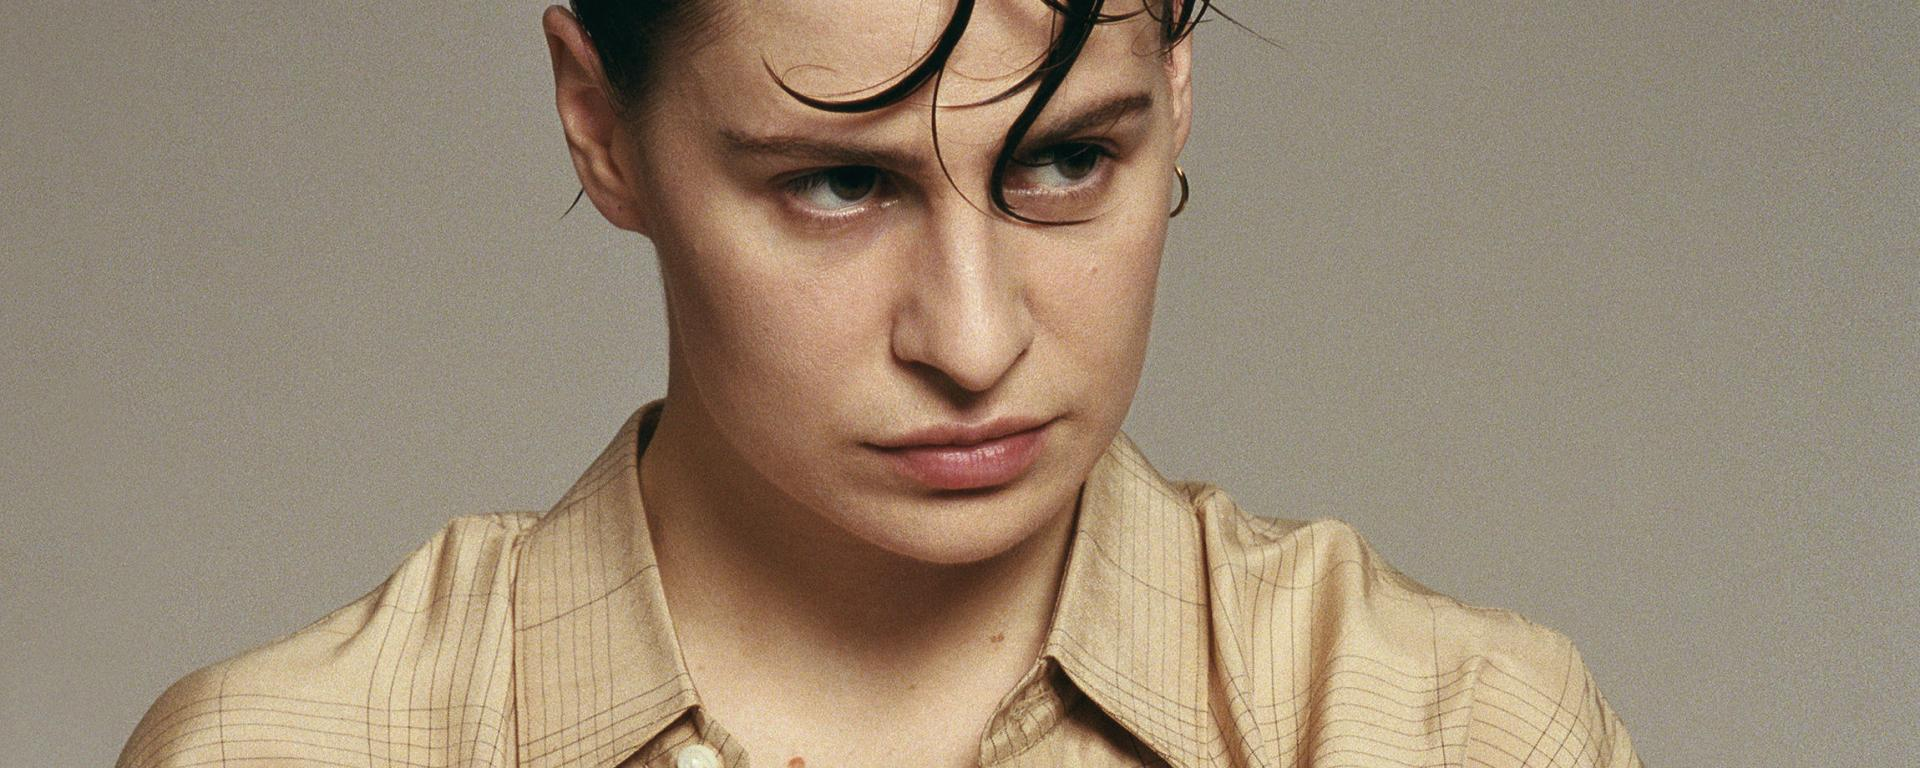 Christine and the Queens, photo taken from NPR.com